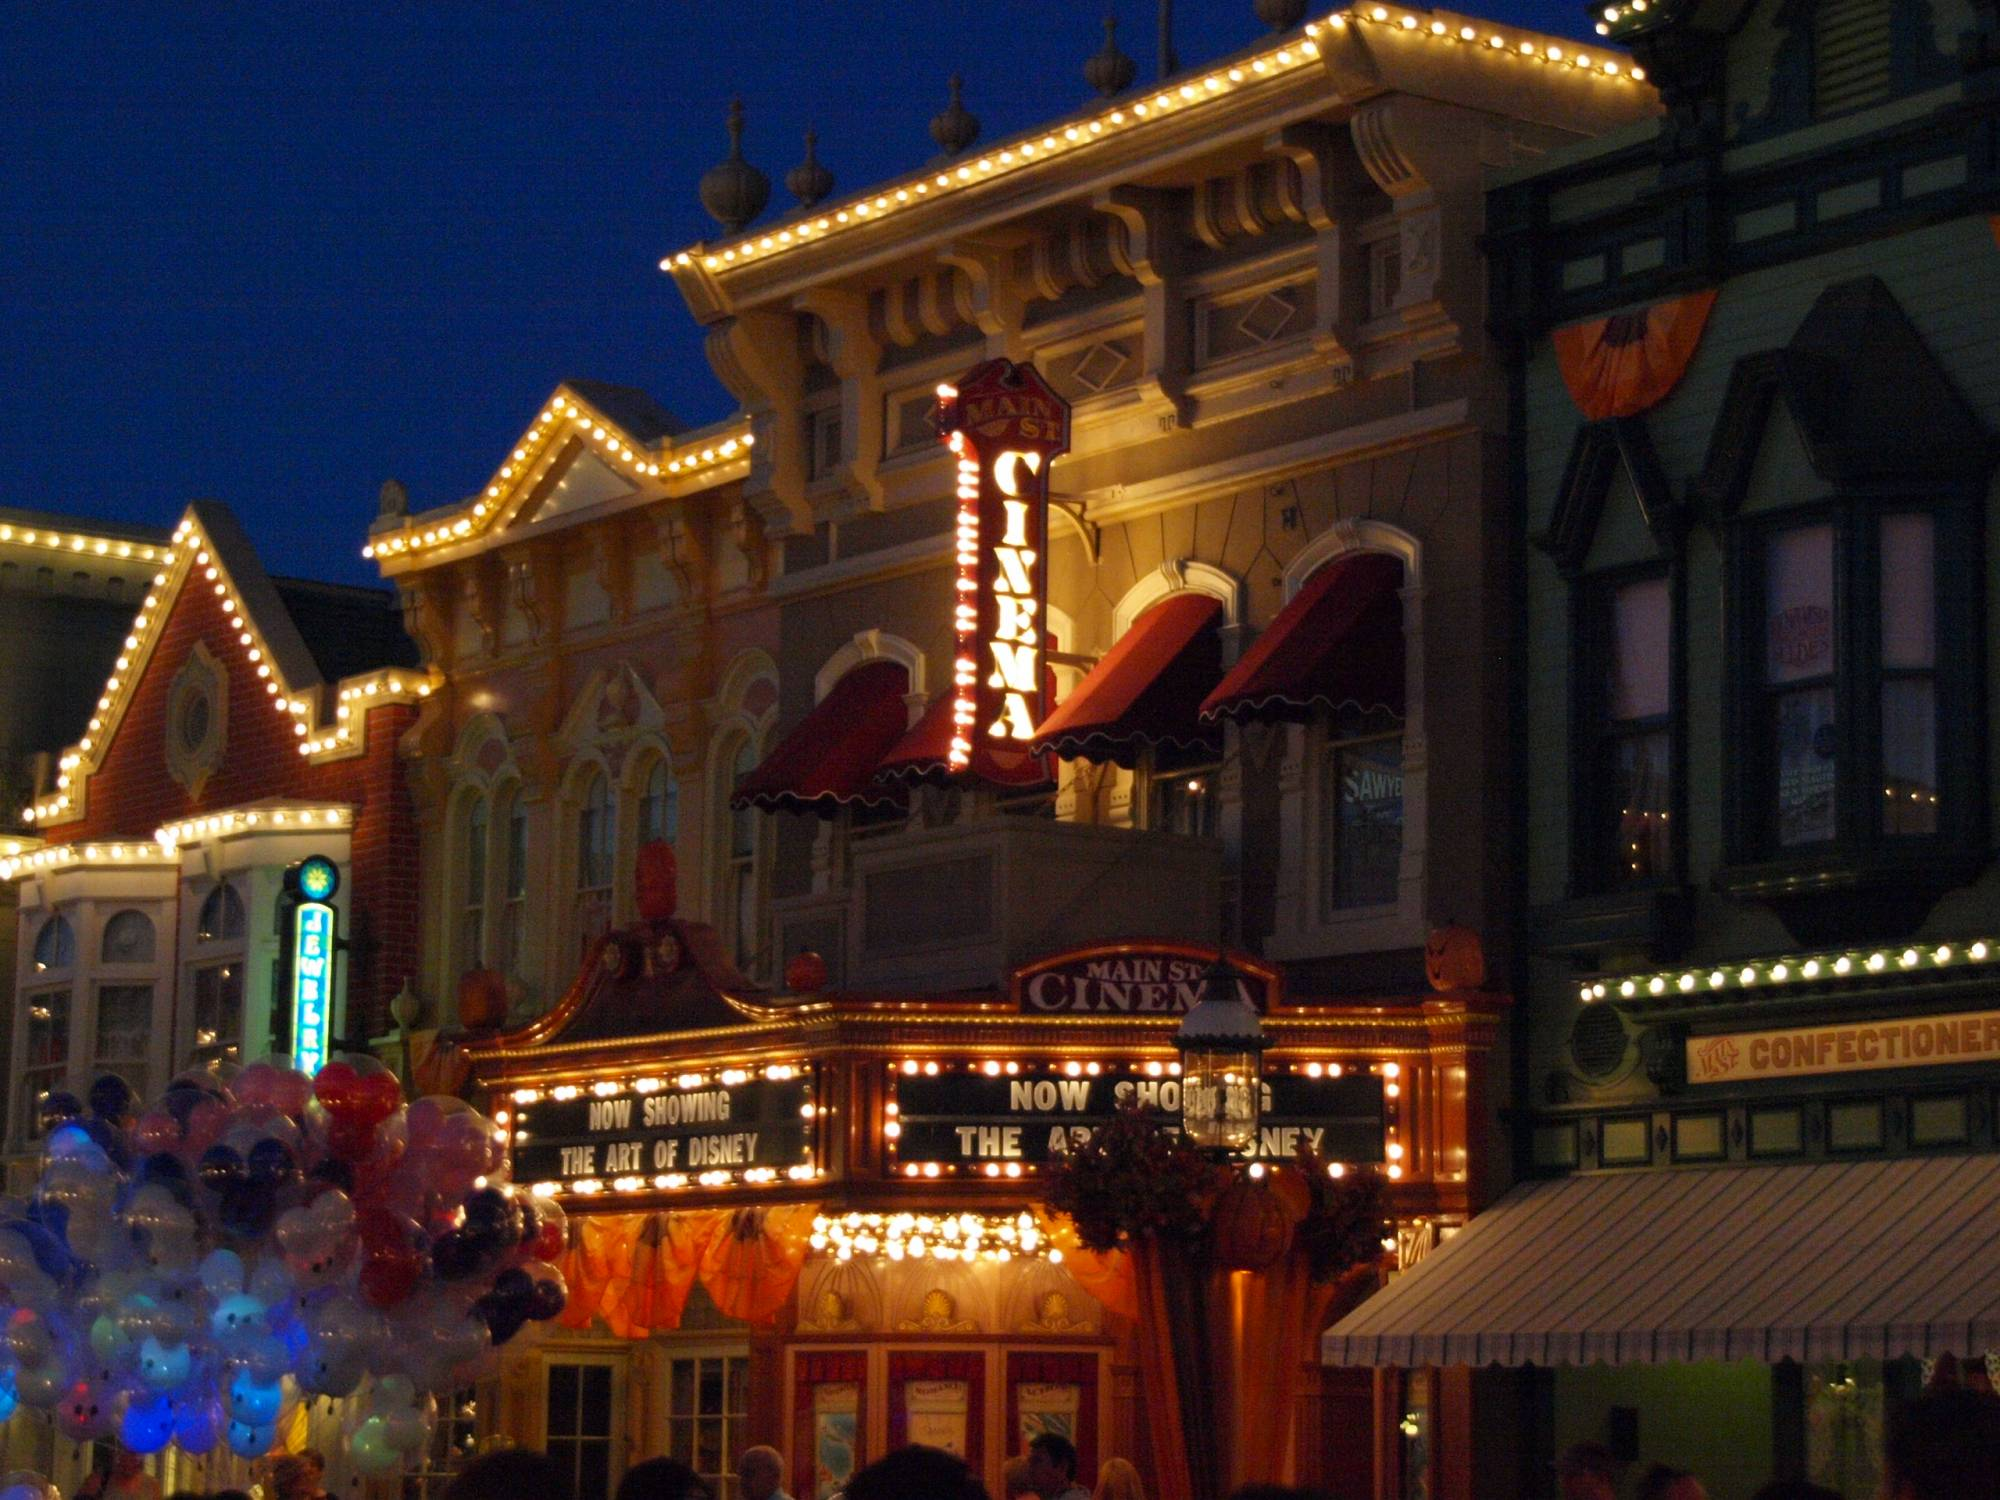 Main Street Cinema at night